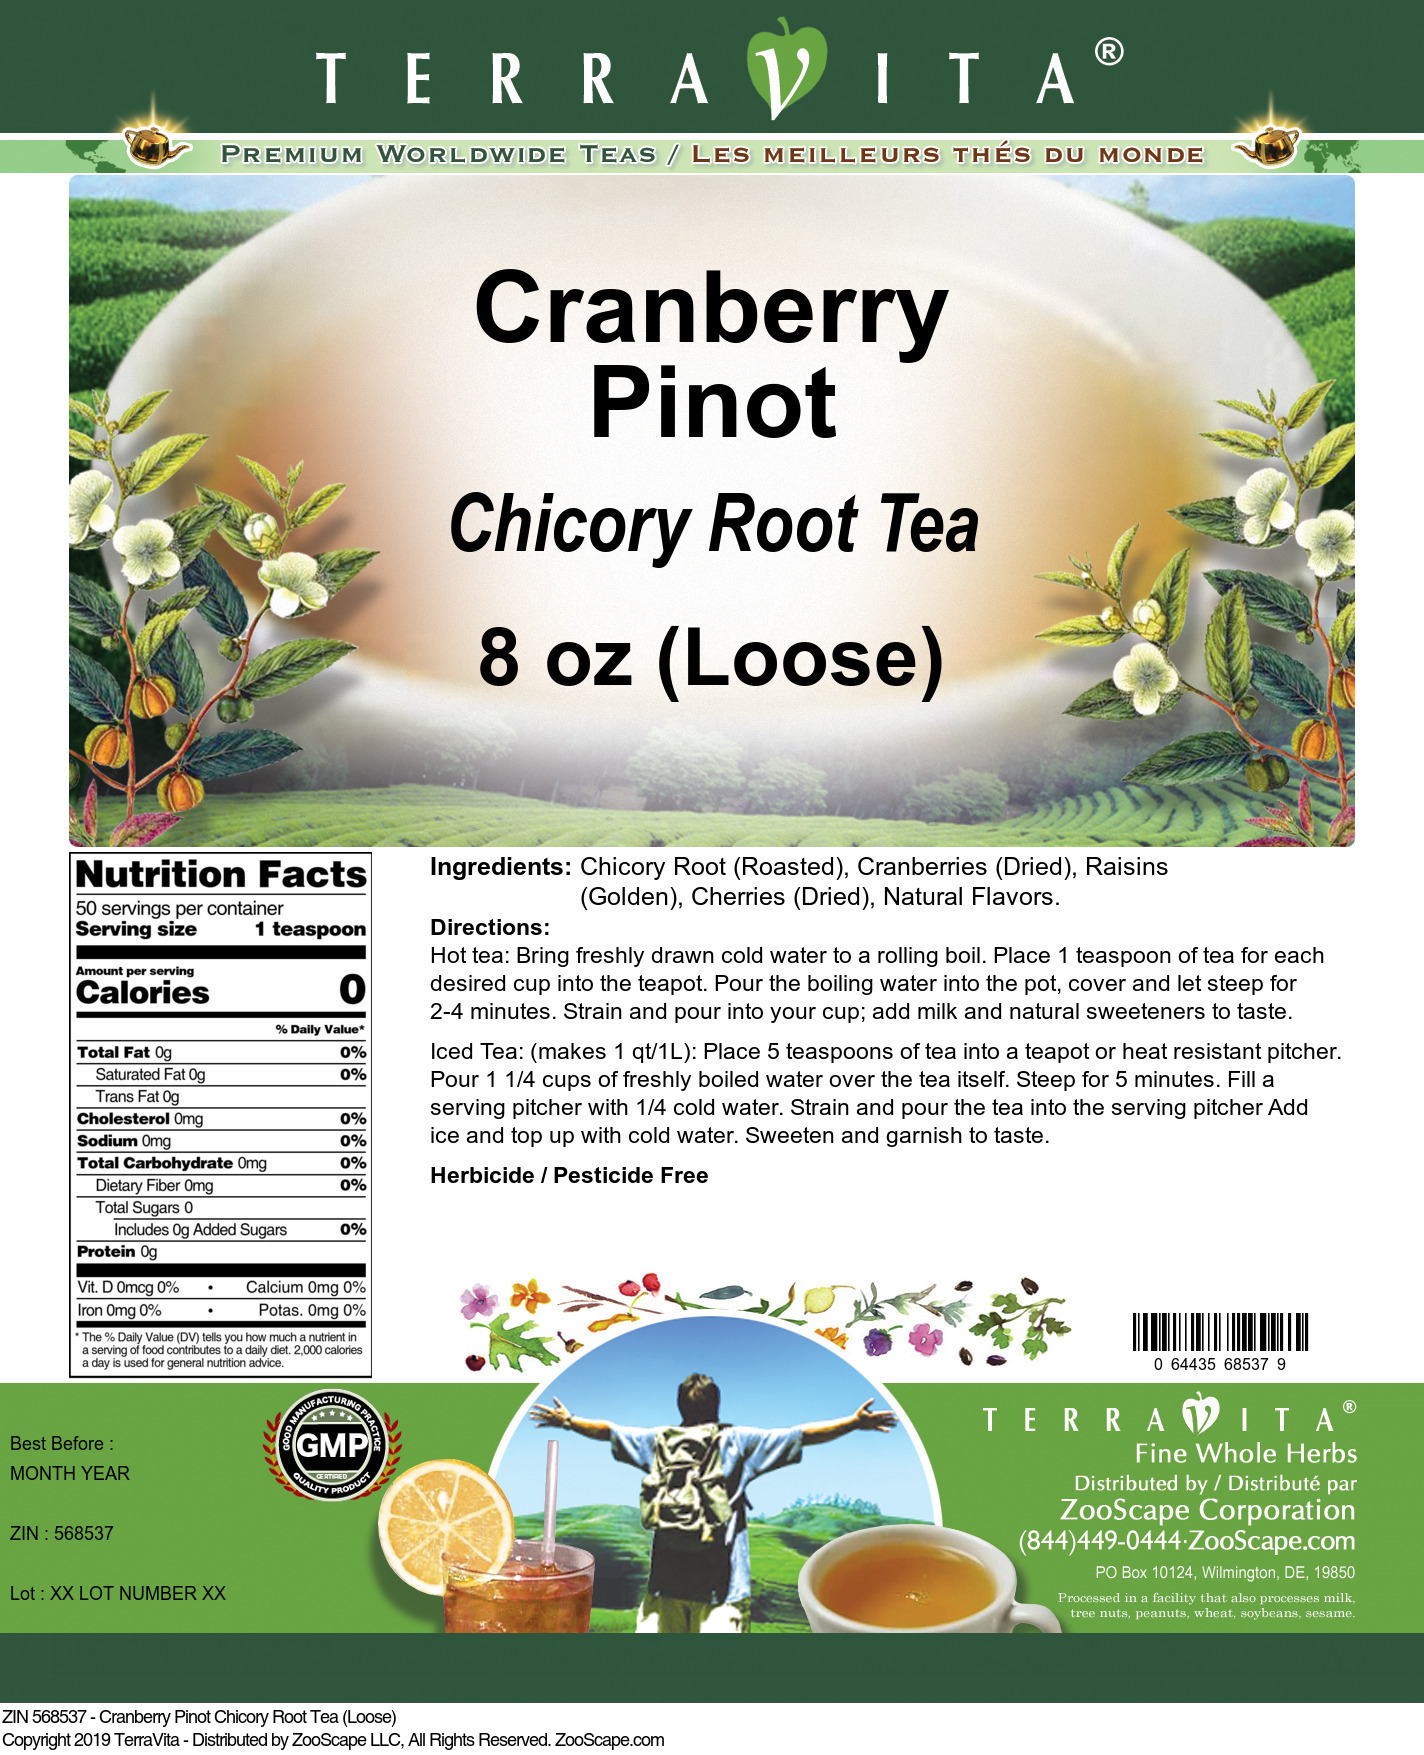 Cranberry Pinot Chicory Root Tea (Loose)